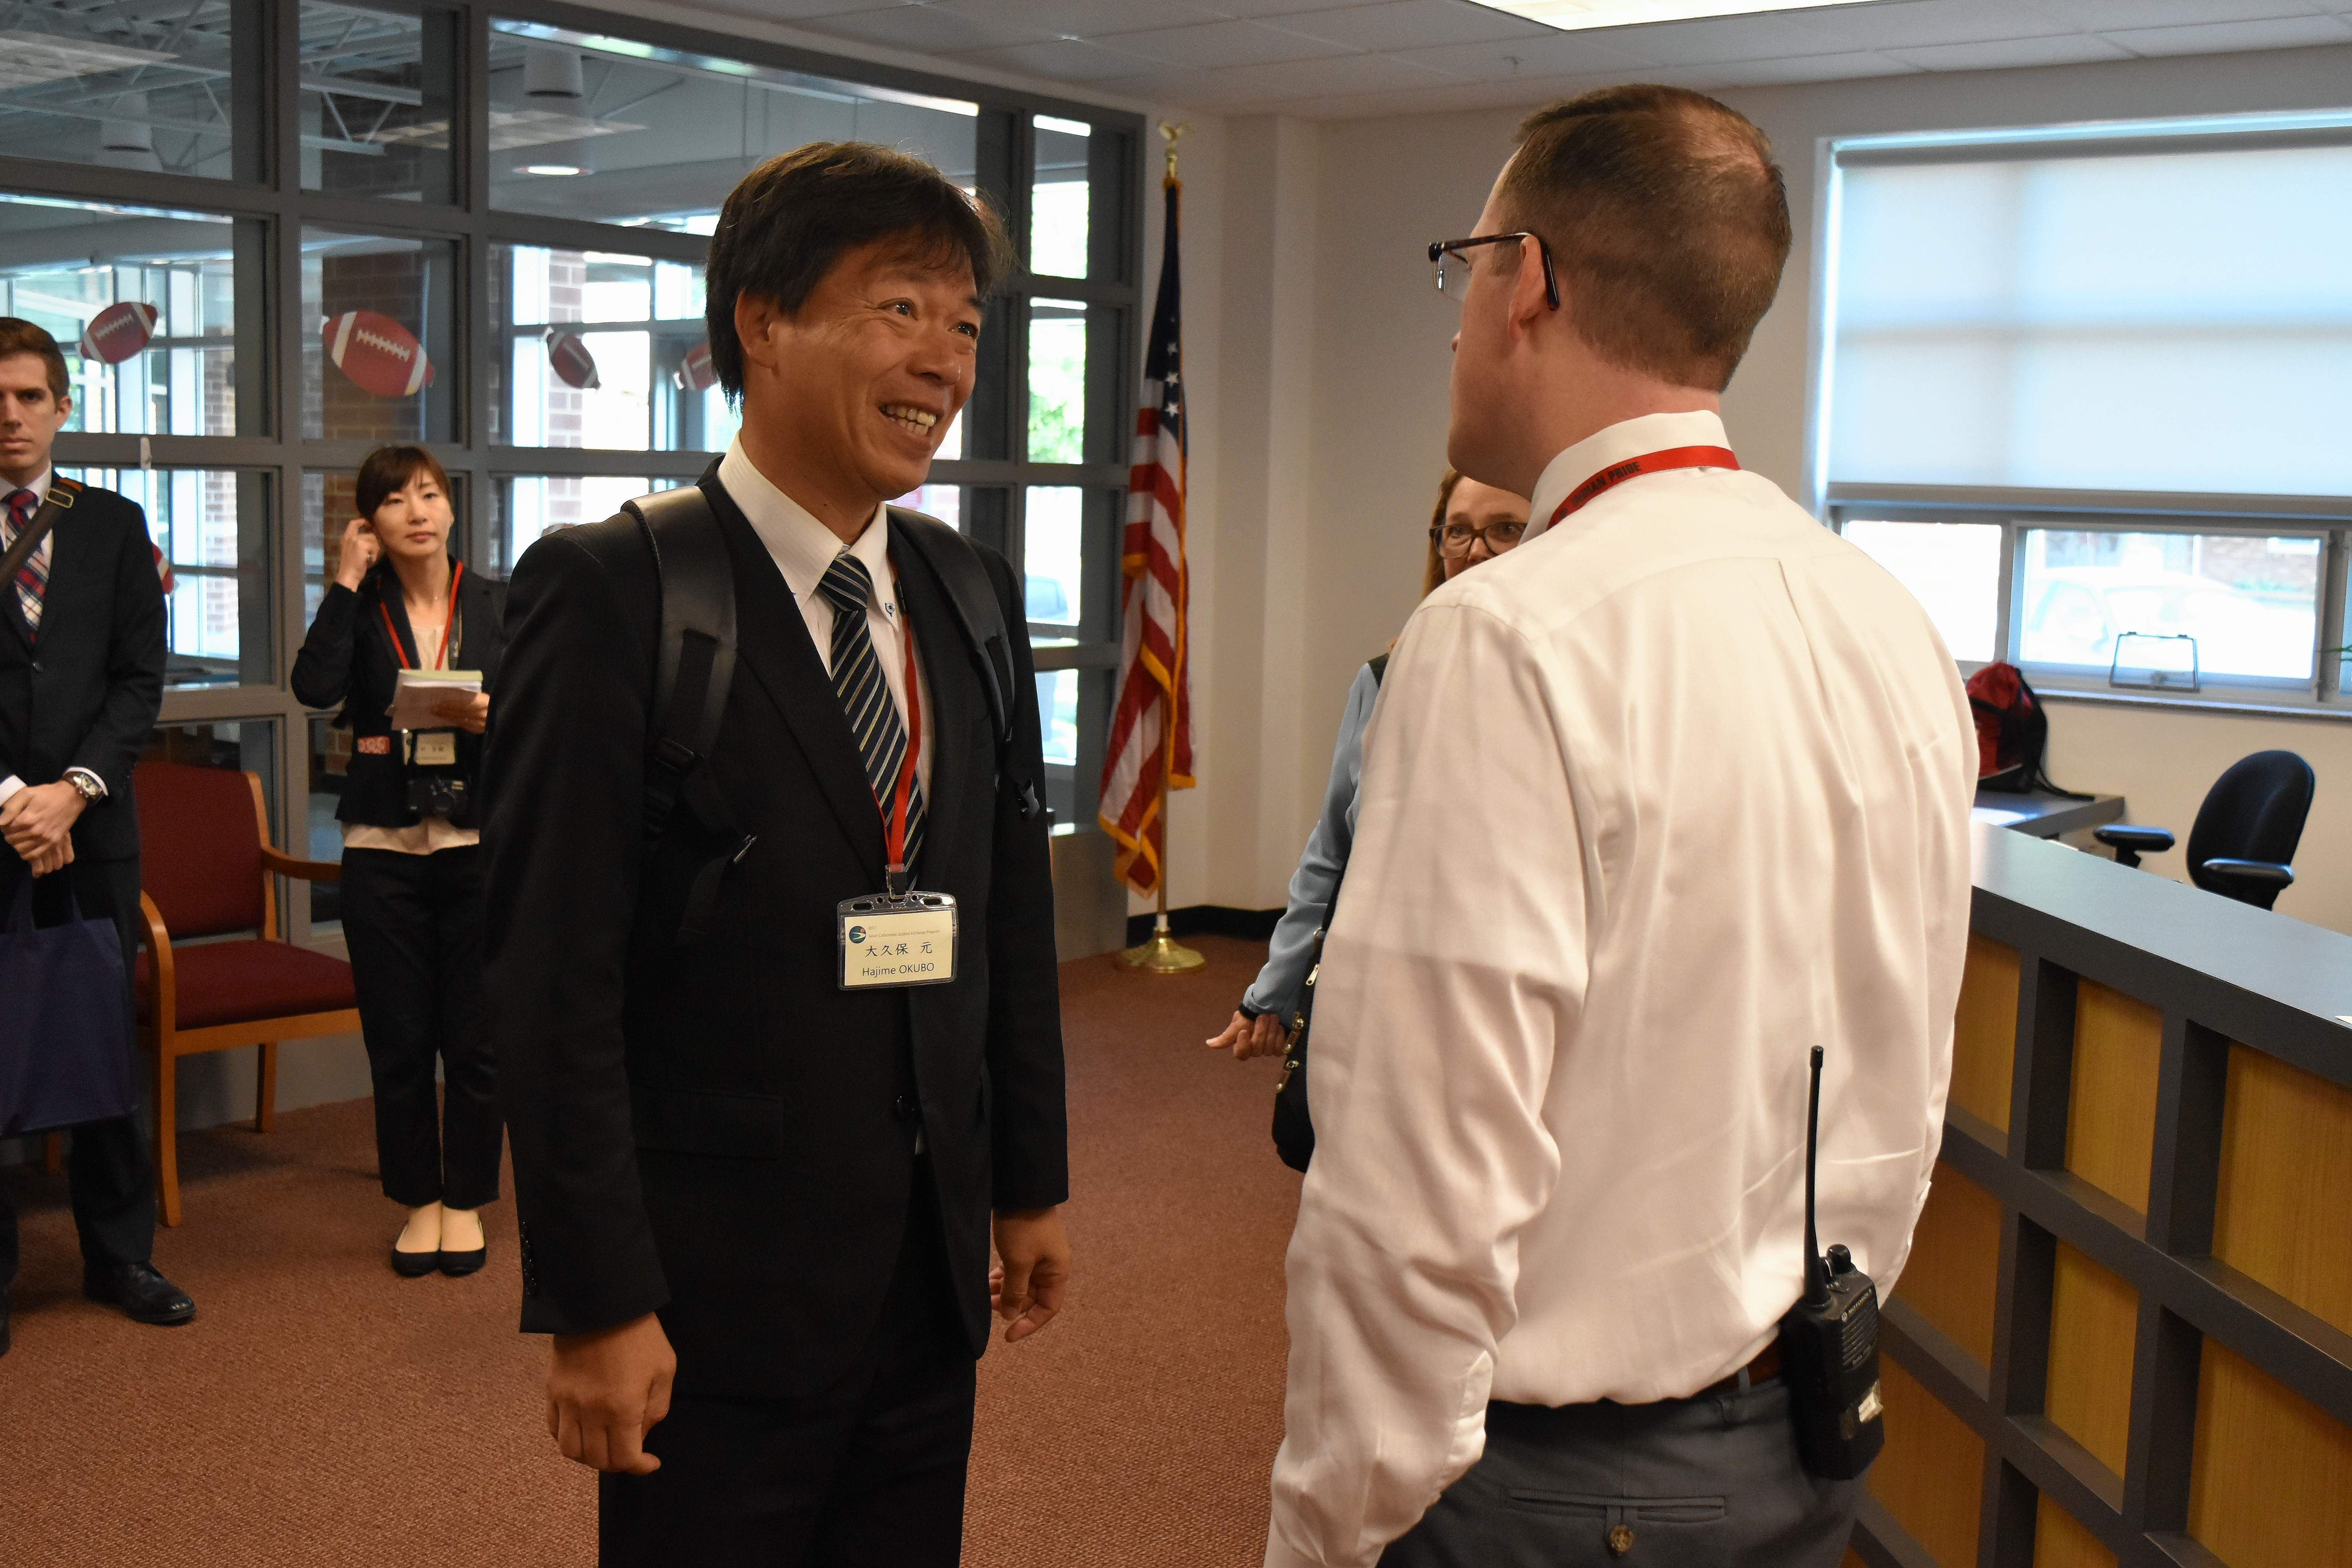 Hajime Okubo, principal of Kinoto Junior High School in Tainai, Japan, greets Du Quoin High School Principal Matthew Hickam during a visit to the school Monday morning.